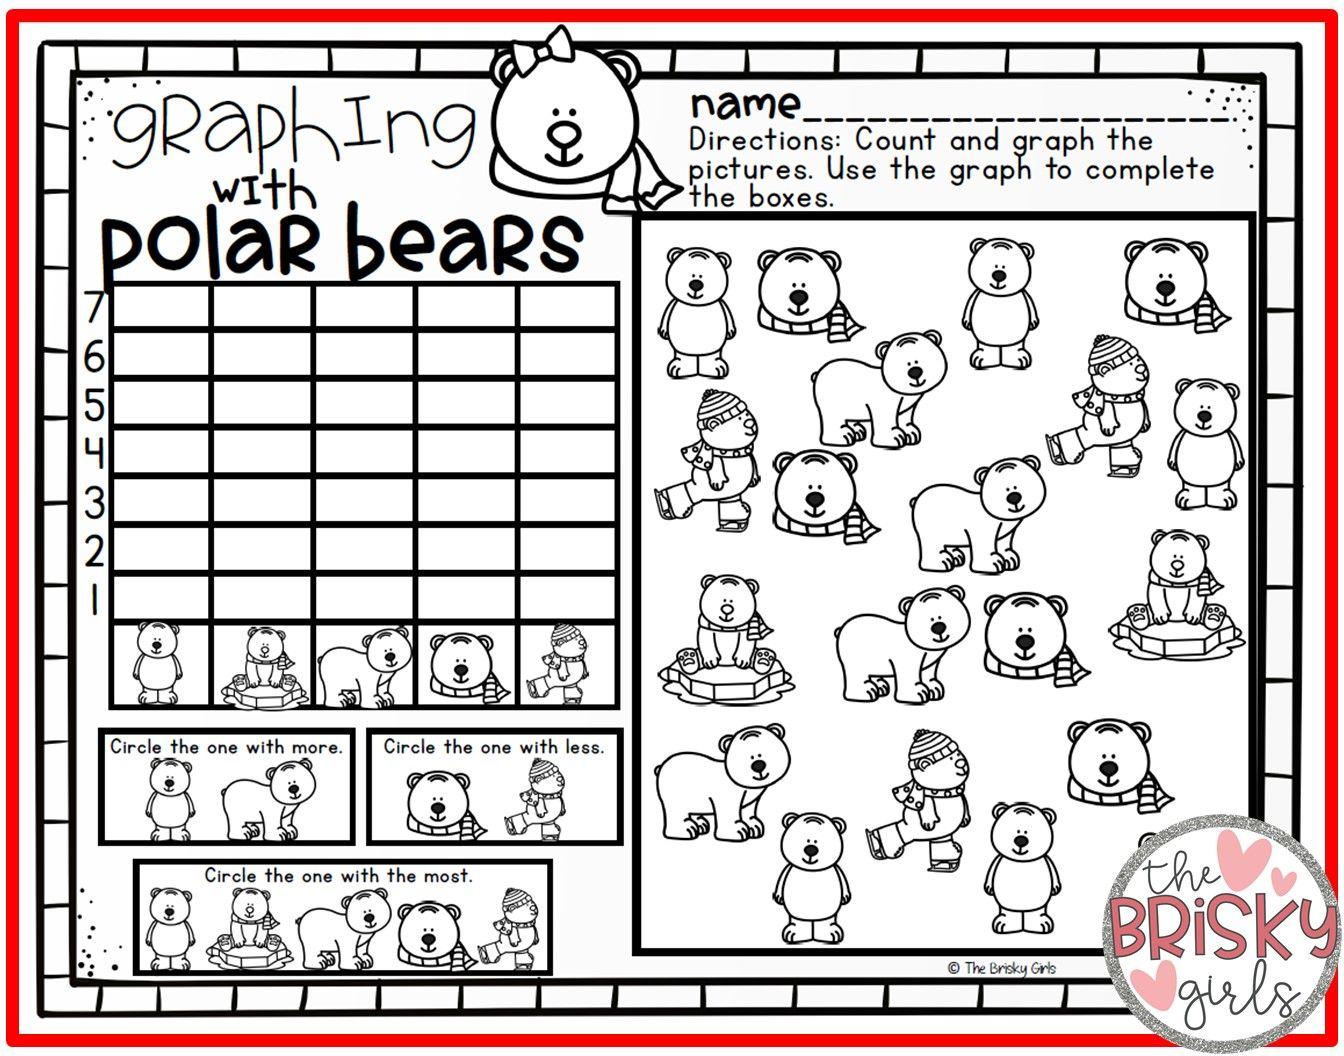 Pin By The Brisky Girls On Y Care Polar Bears Kindergarten Polar Bears Preschool Polar Bears Activities [ 1056 x 1344 Pixel ]